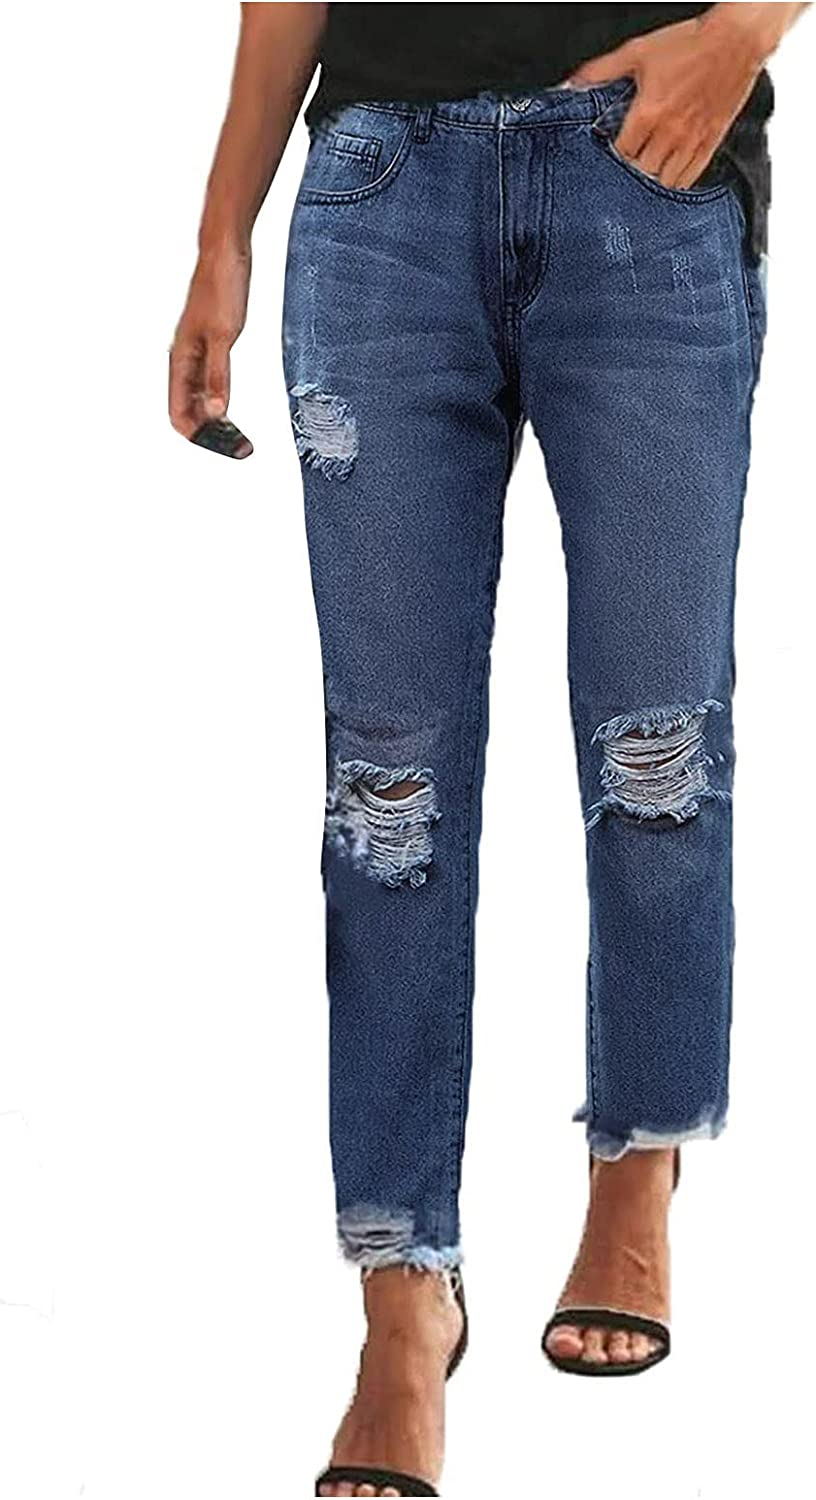 MIVAMIYA Women's Ripped Mom Jeans High Waisted Fray Hem Jeans Skinny Denim Ankle Jeans Slim Fit Distressed Jeans Pants